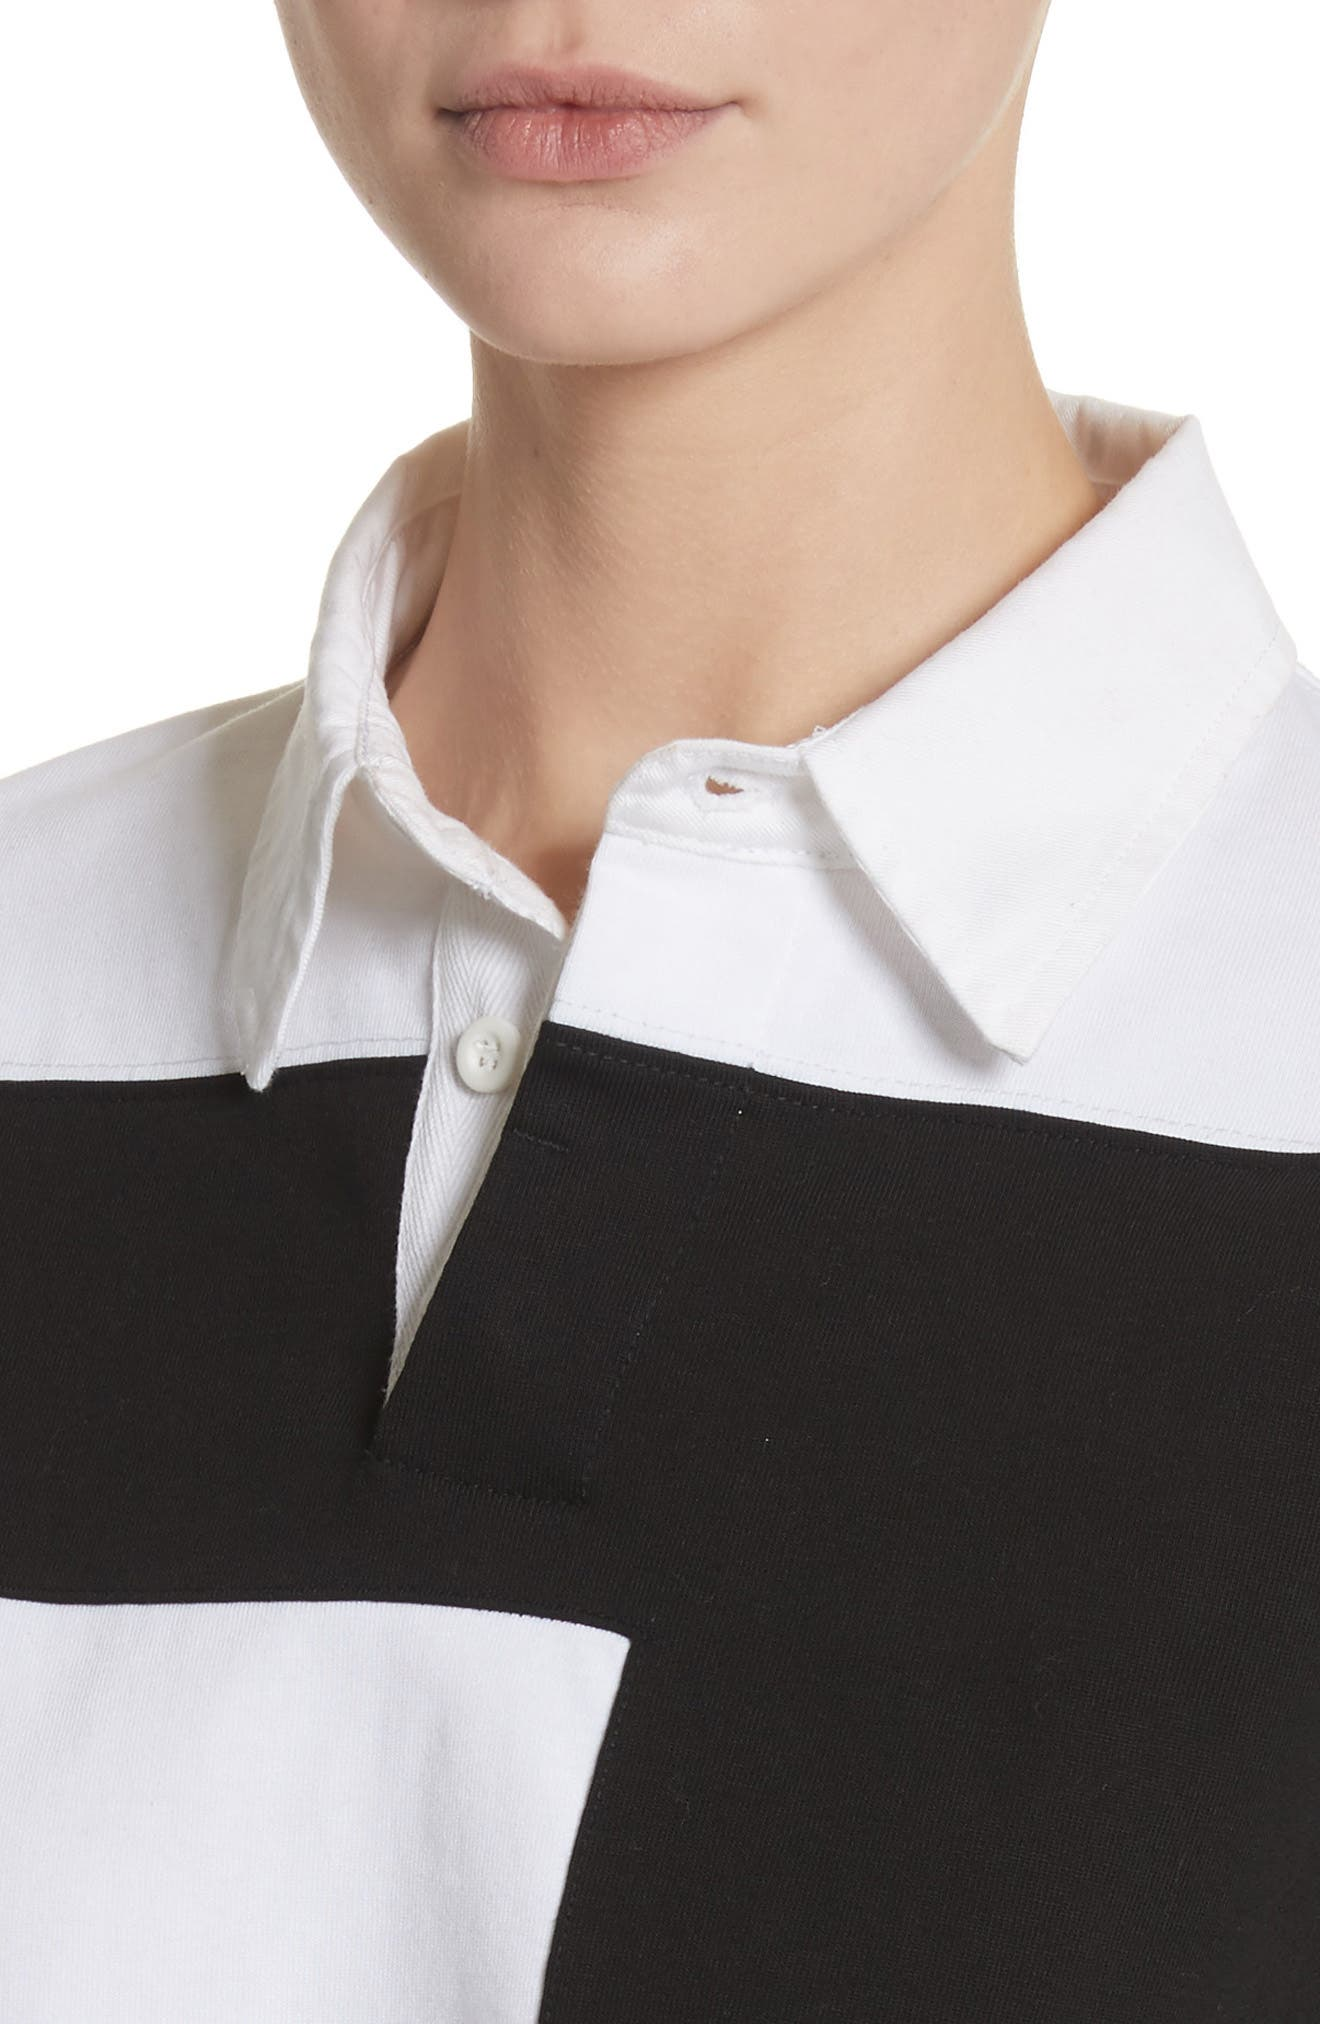 PSWL Cotton Rugby Top,                             Alternate thumbnail 4, color,                             001